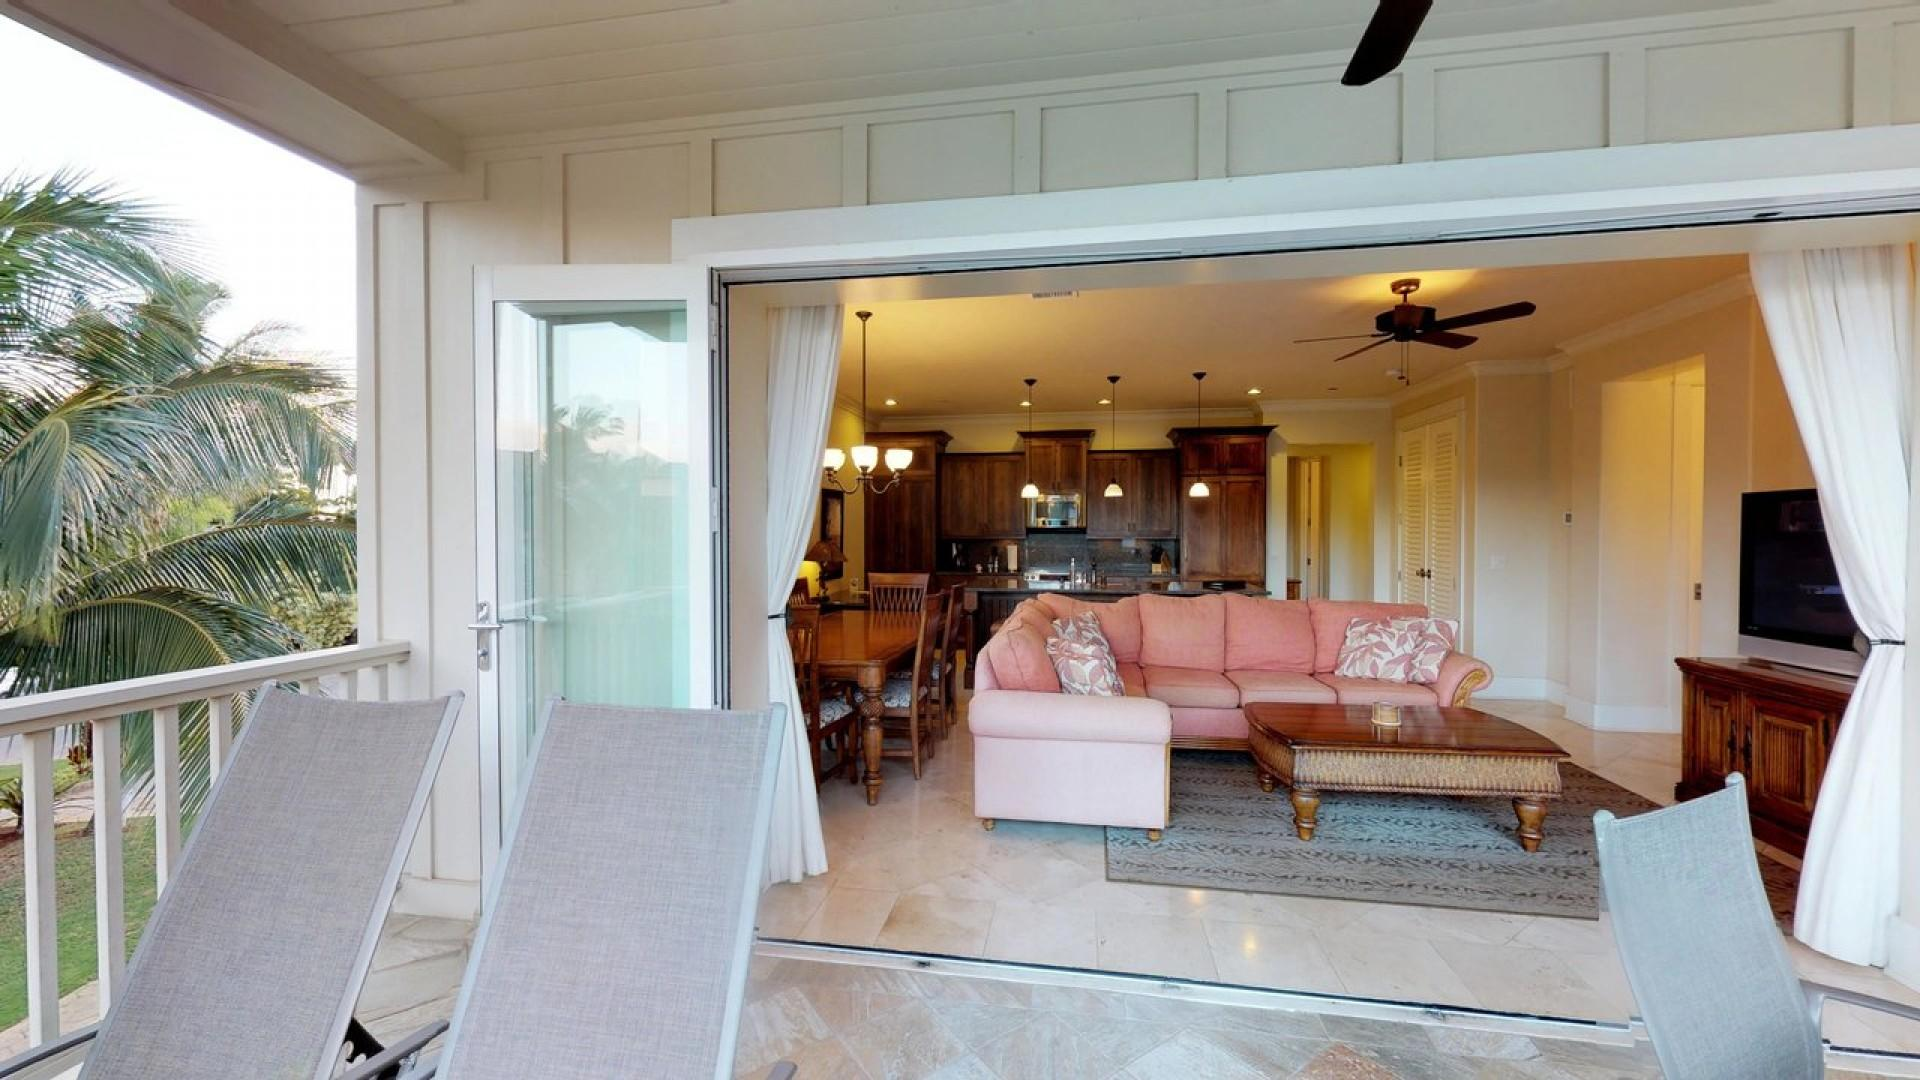 Interior View From The Lanai